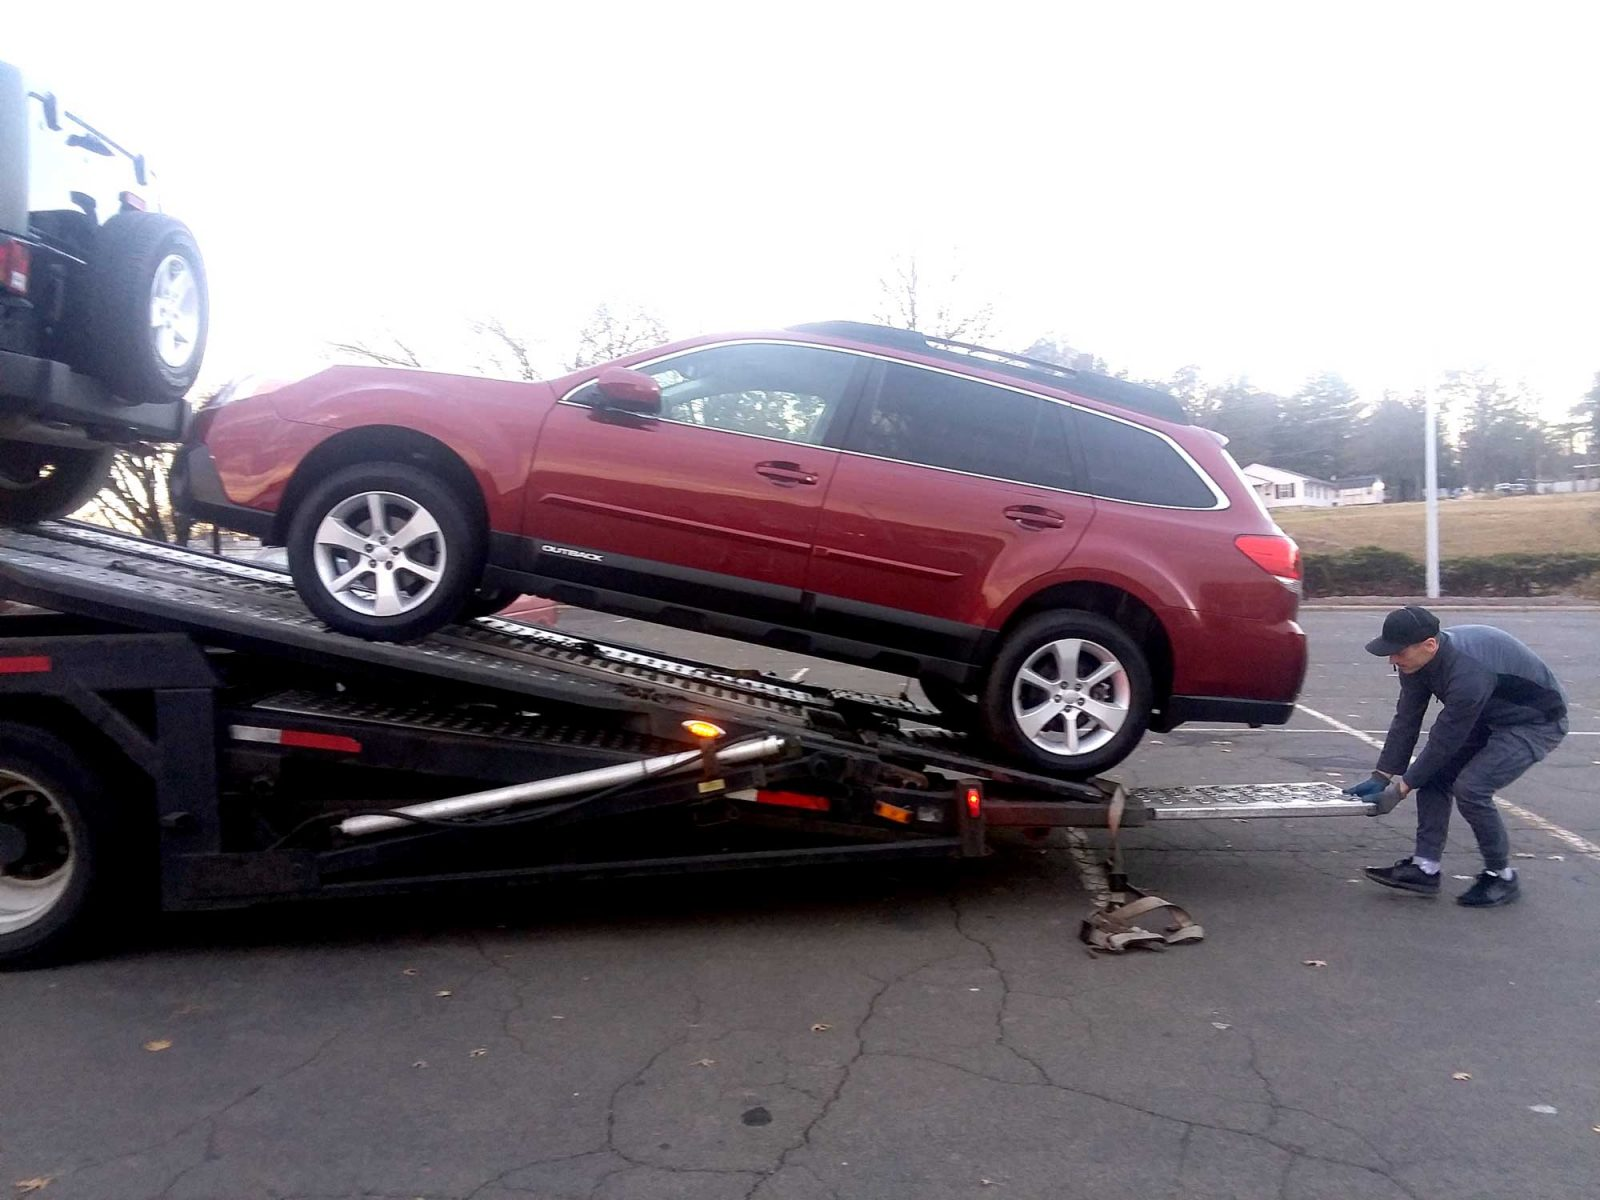 Shipping your newly purchased vehicle from elsewhere is easy with Car Pal's help.